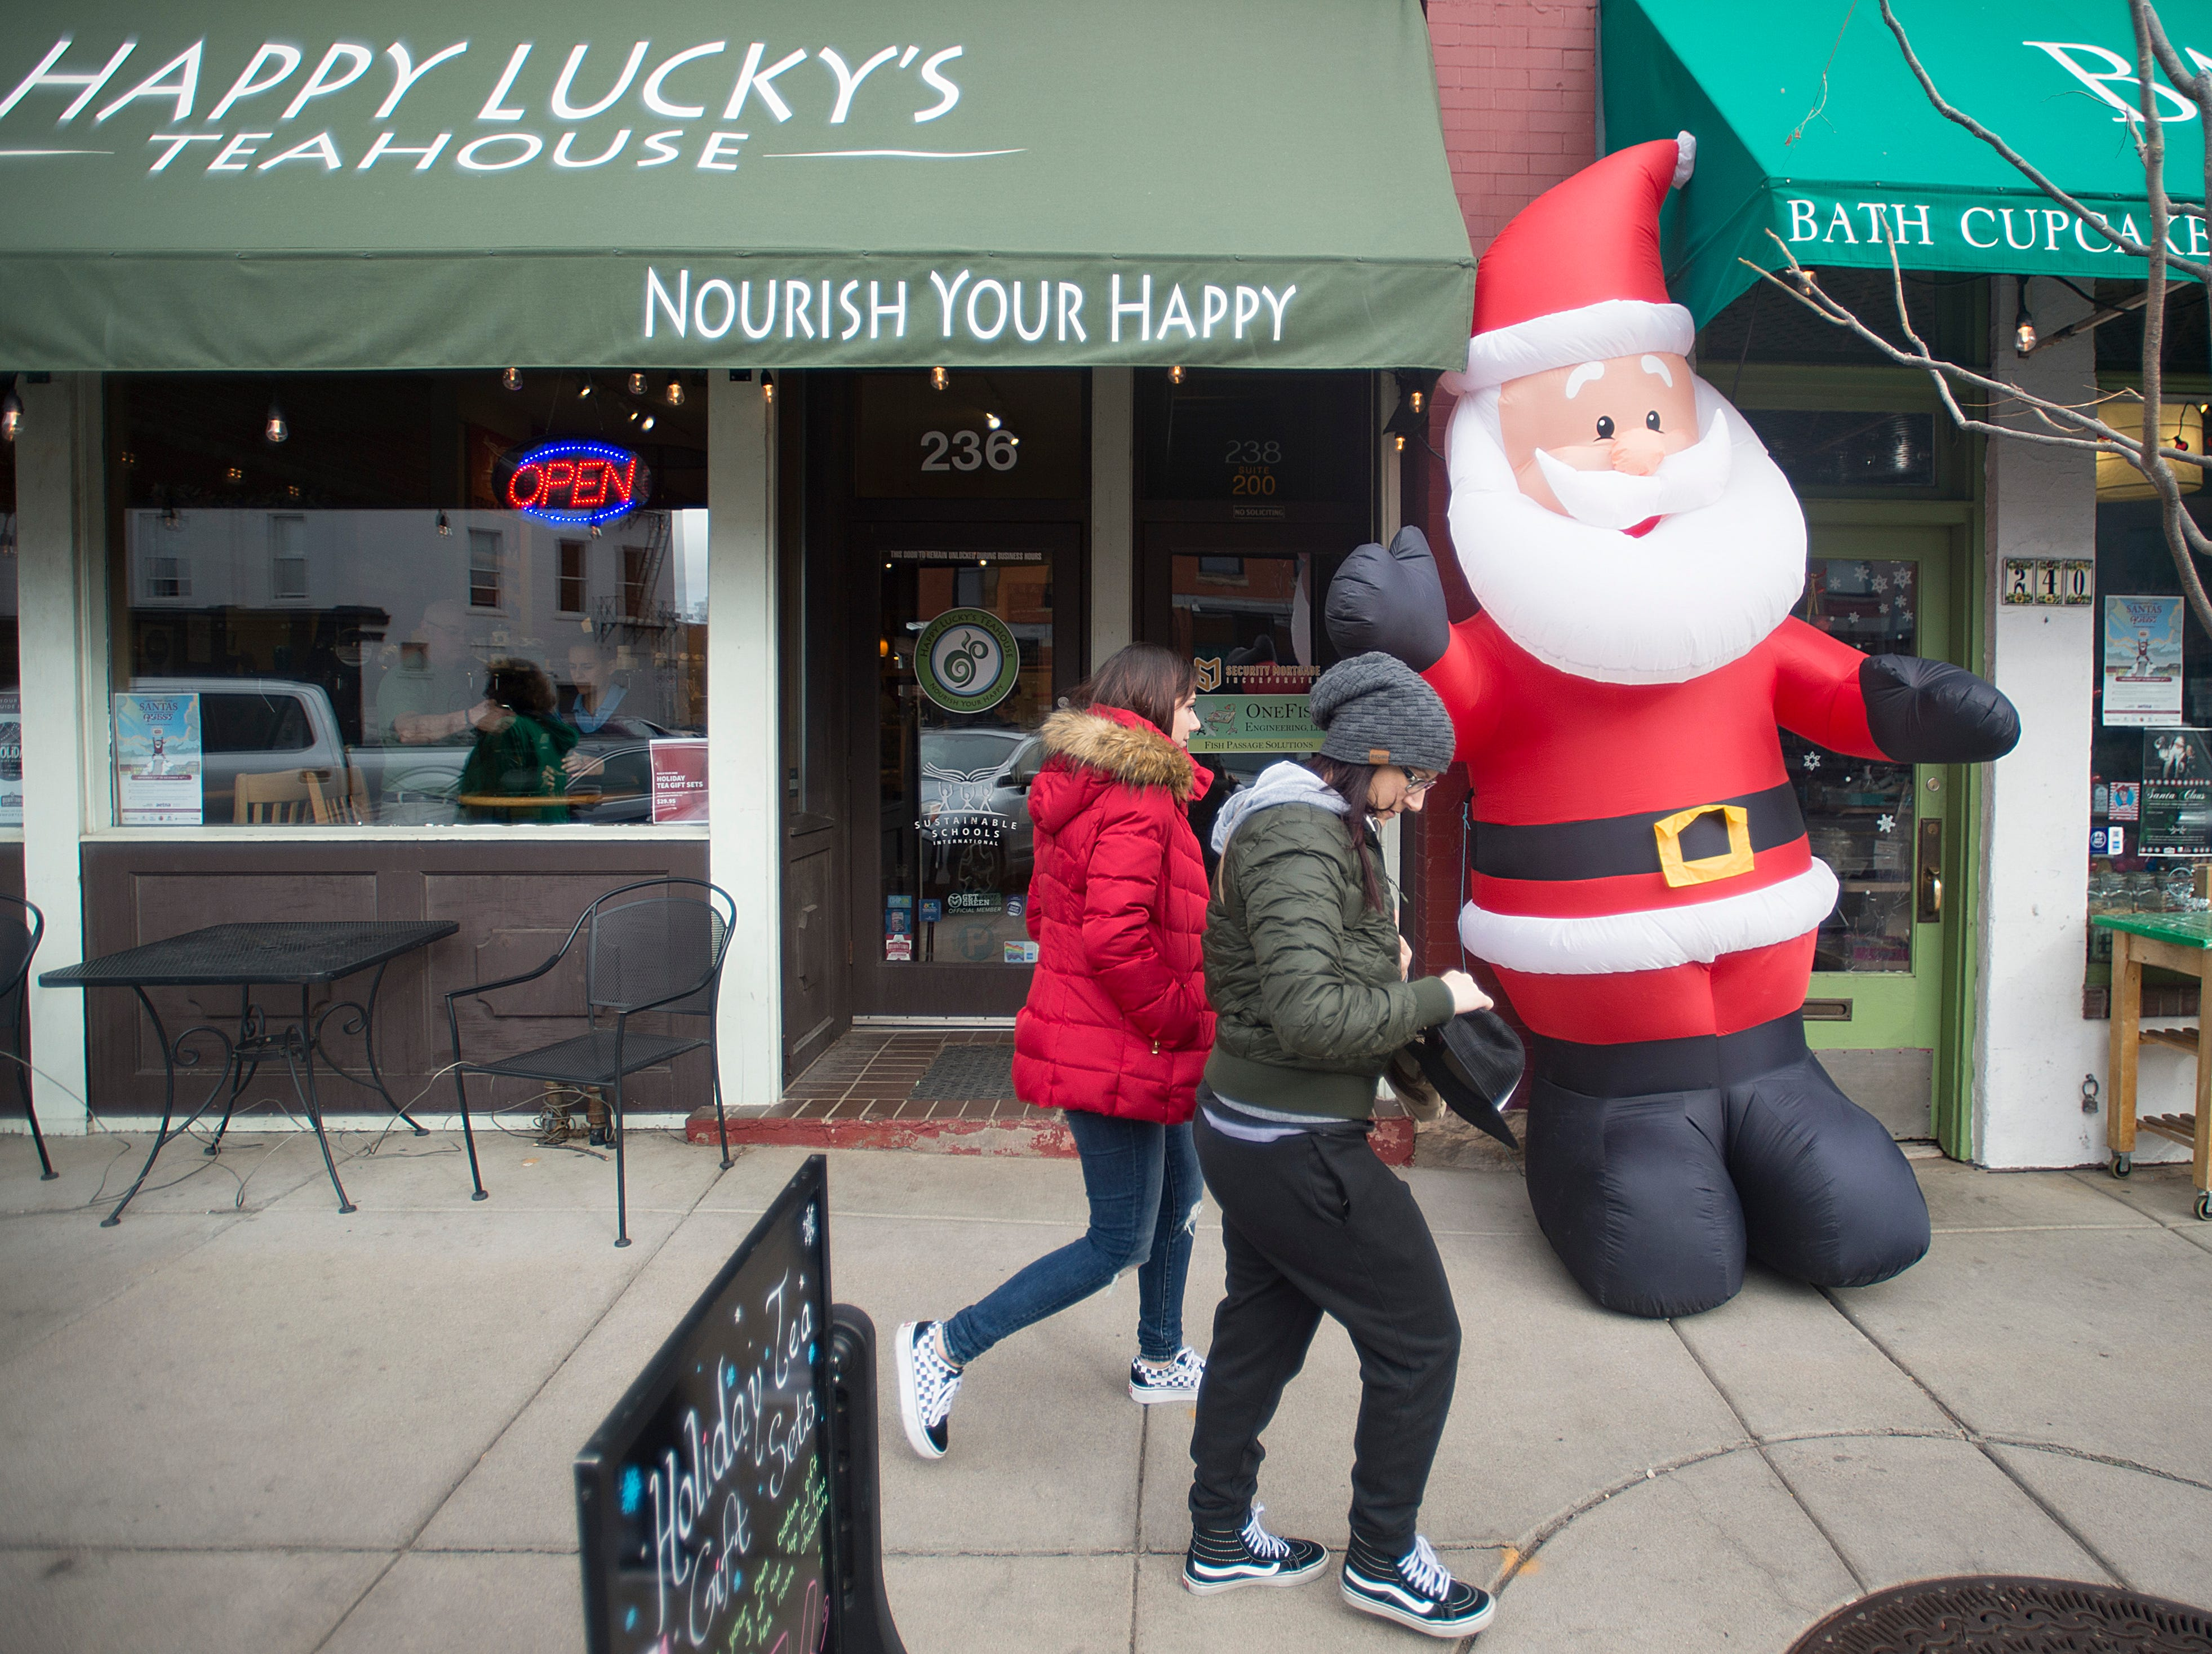 People walk past decorations in Old Town on Monday, December 24, 2018.